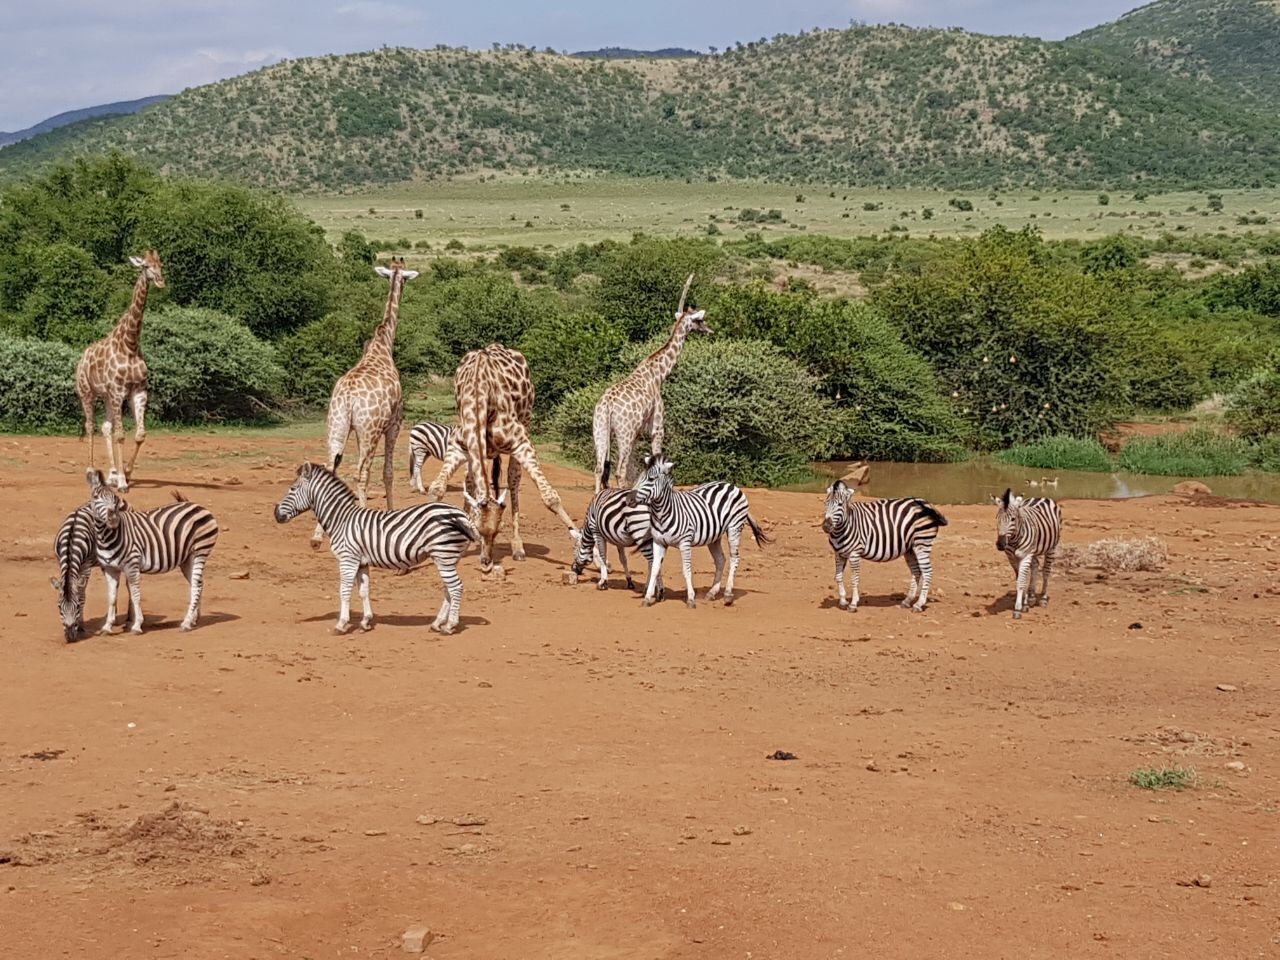 Zebras and Giraffes at a Waterhole.